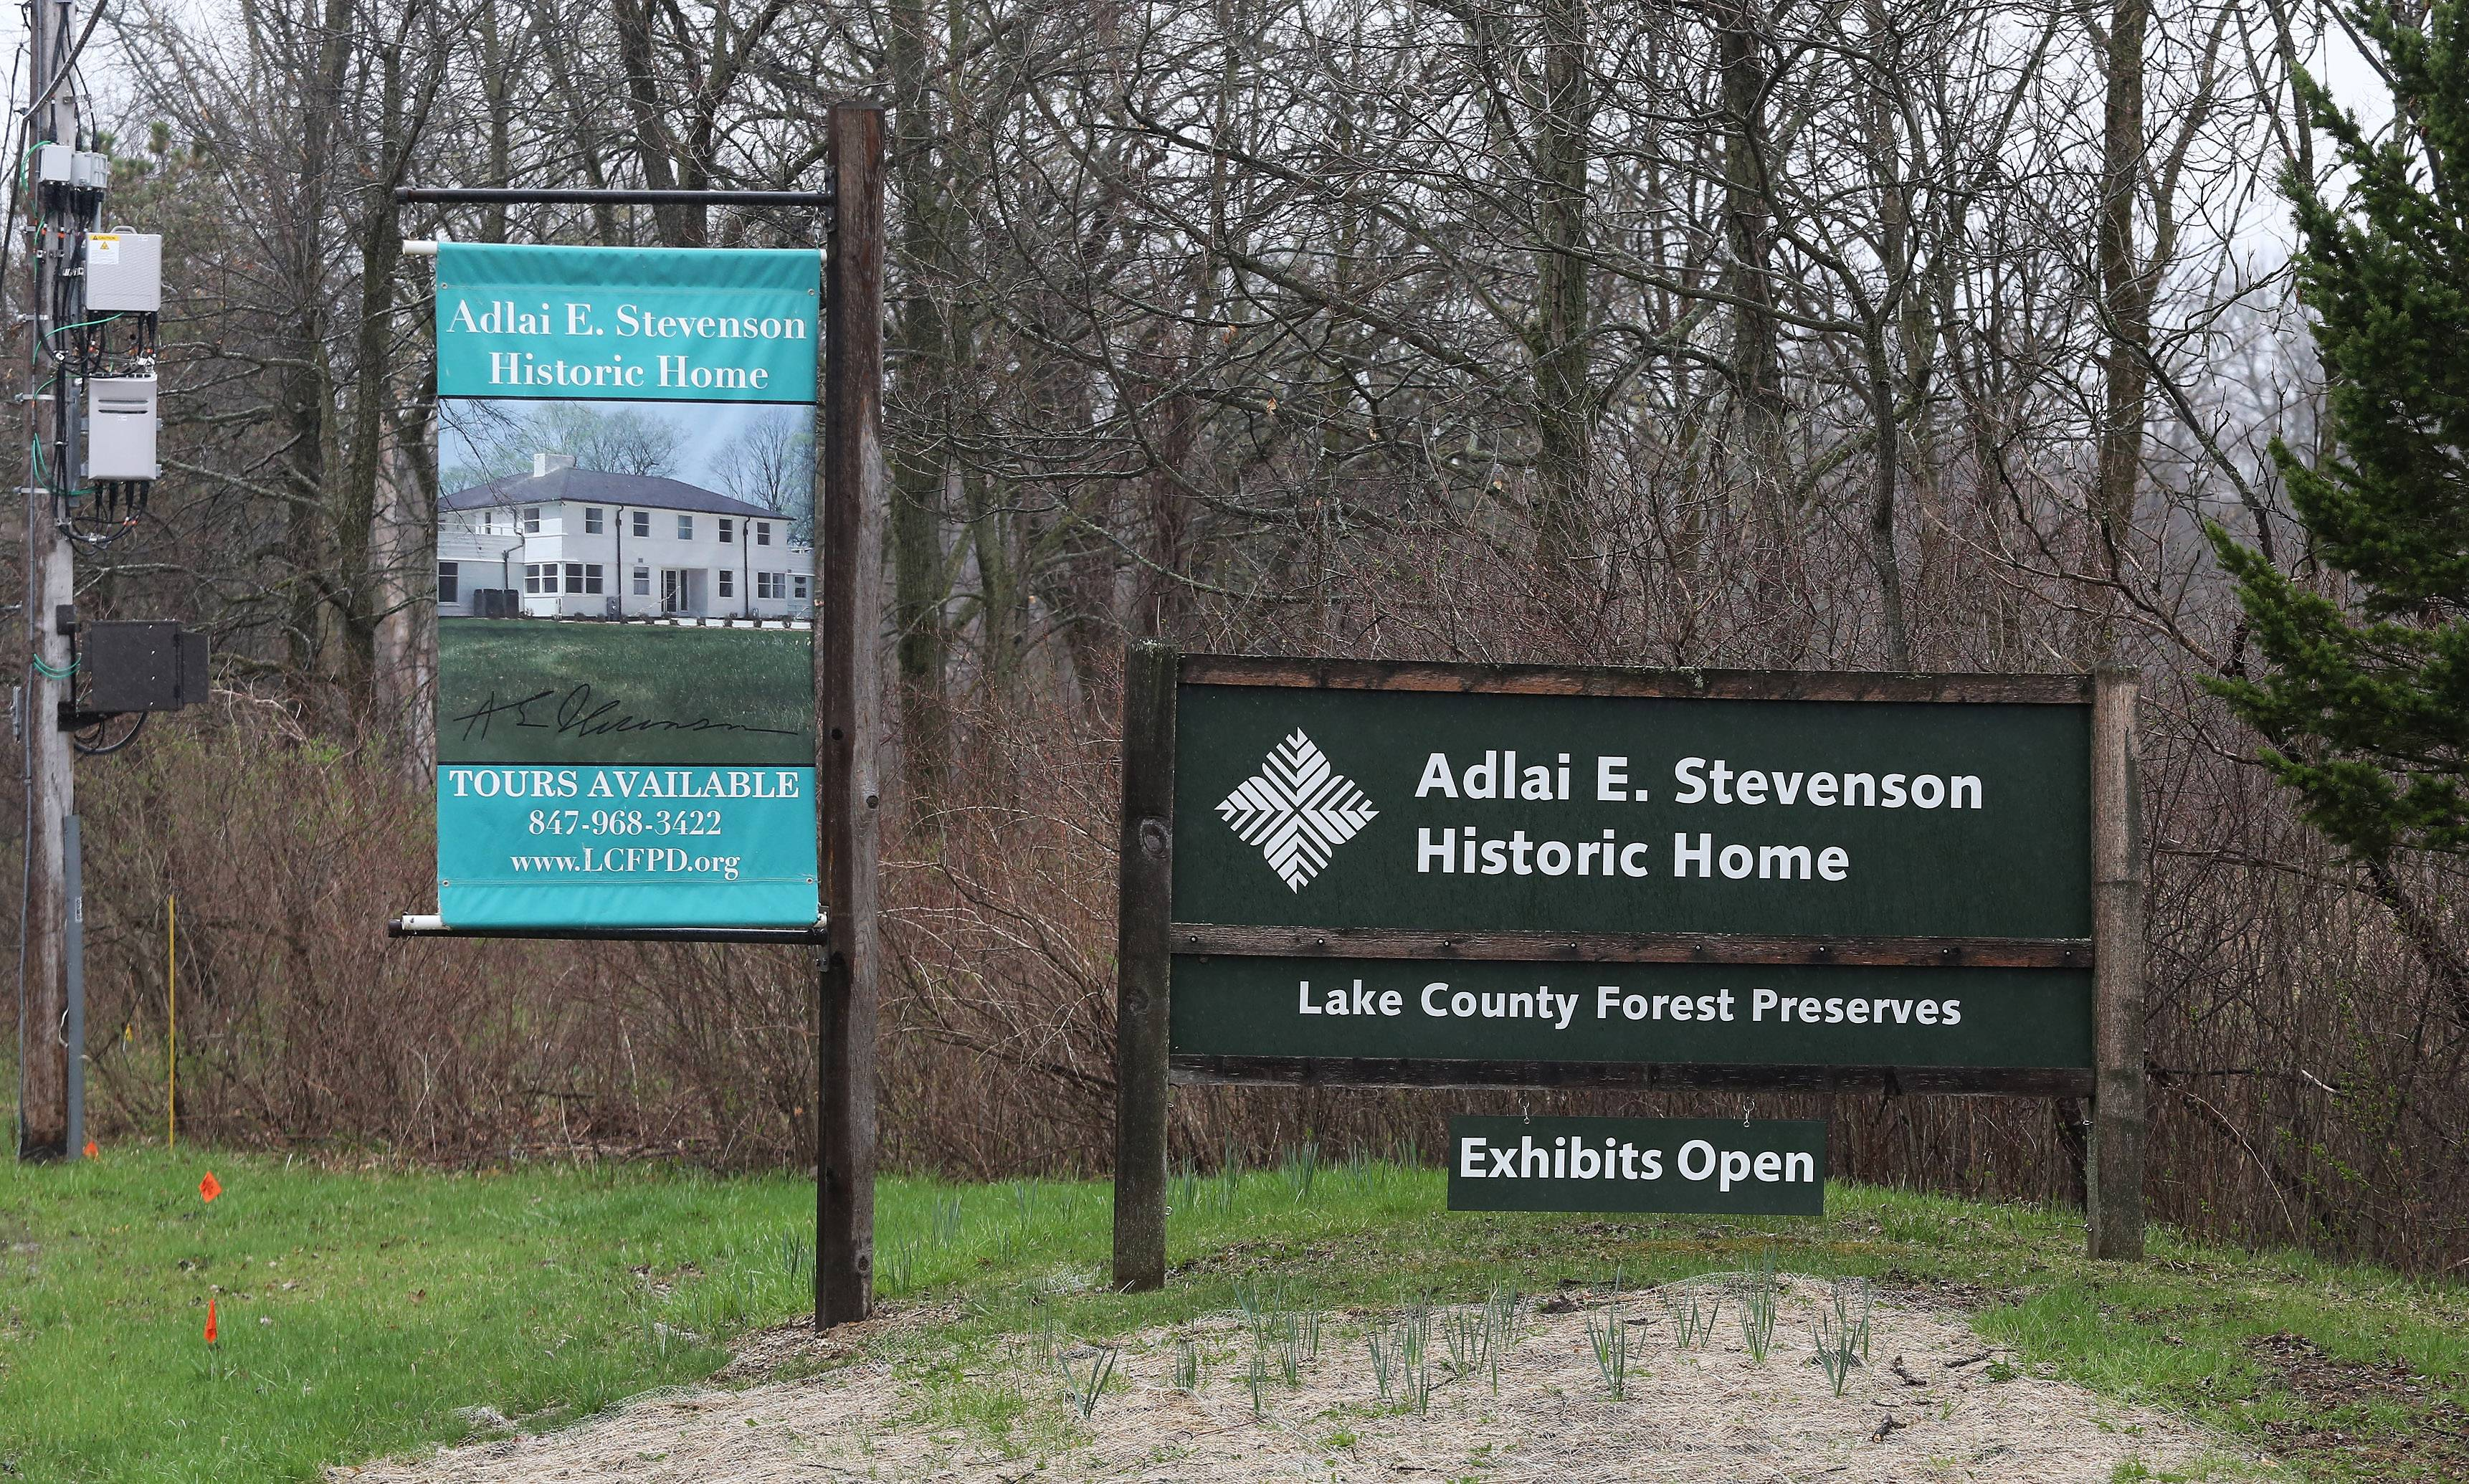 The Adlai E. Stevenson II Historic Home in Mettawa has been named a national historic landmark by the National Park Service.